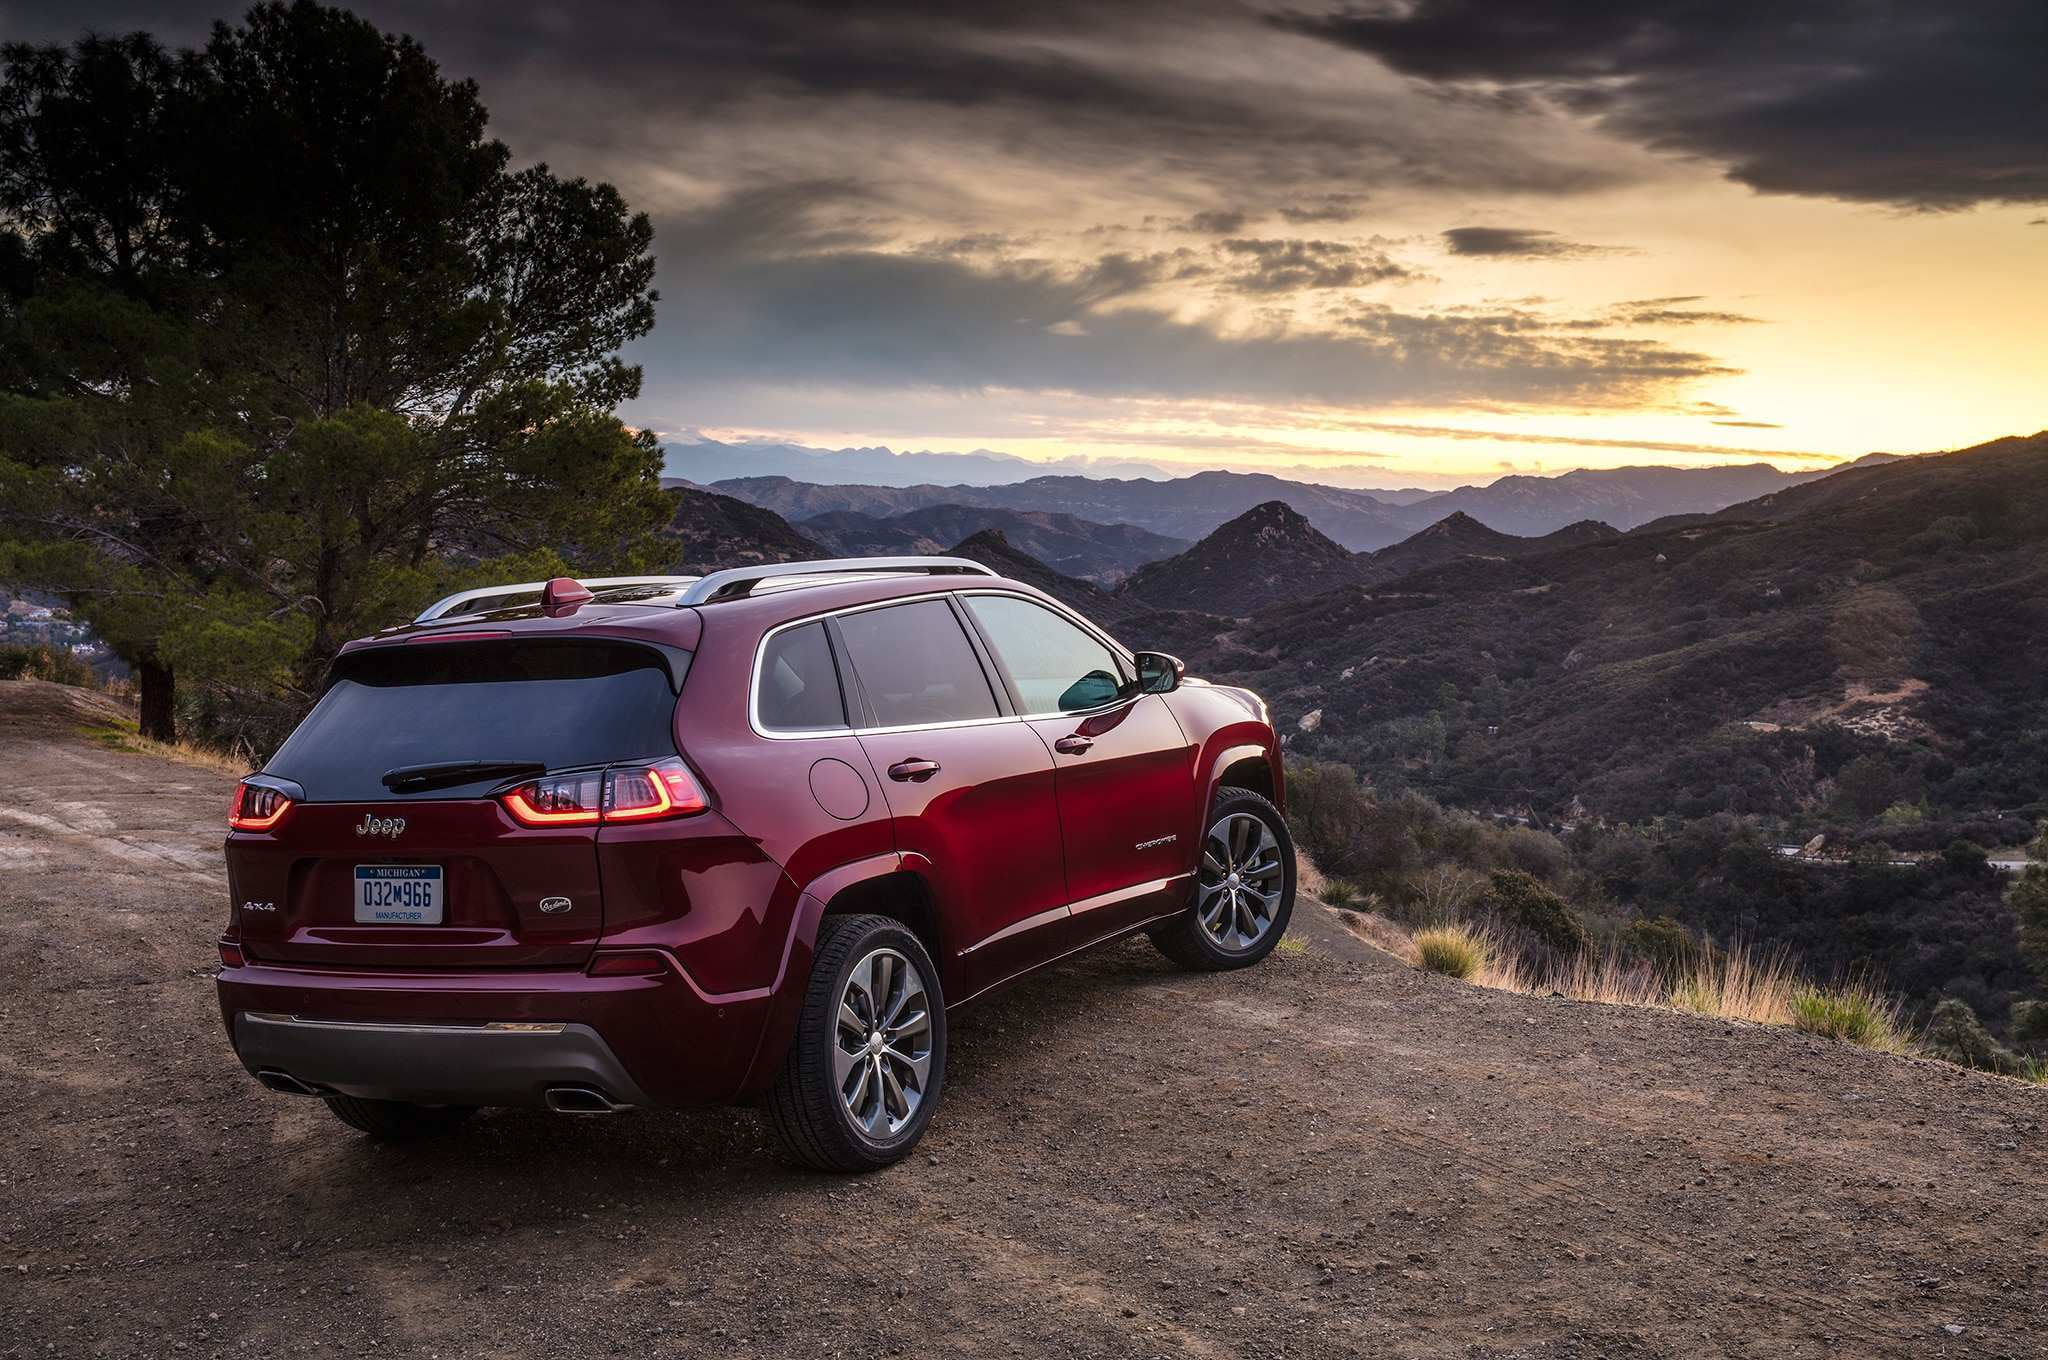 71 Gallery of 2019 Jeep Outlander Specs and Review with 2019 Jeep Outlander